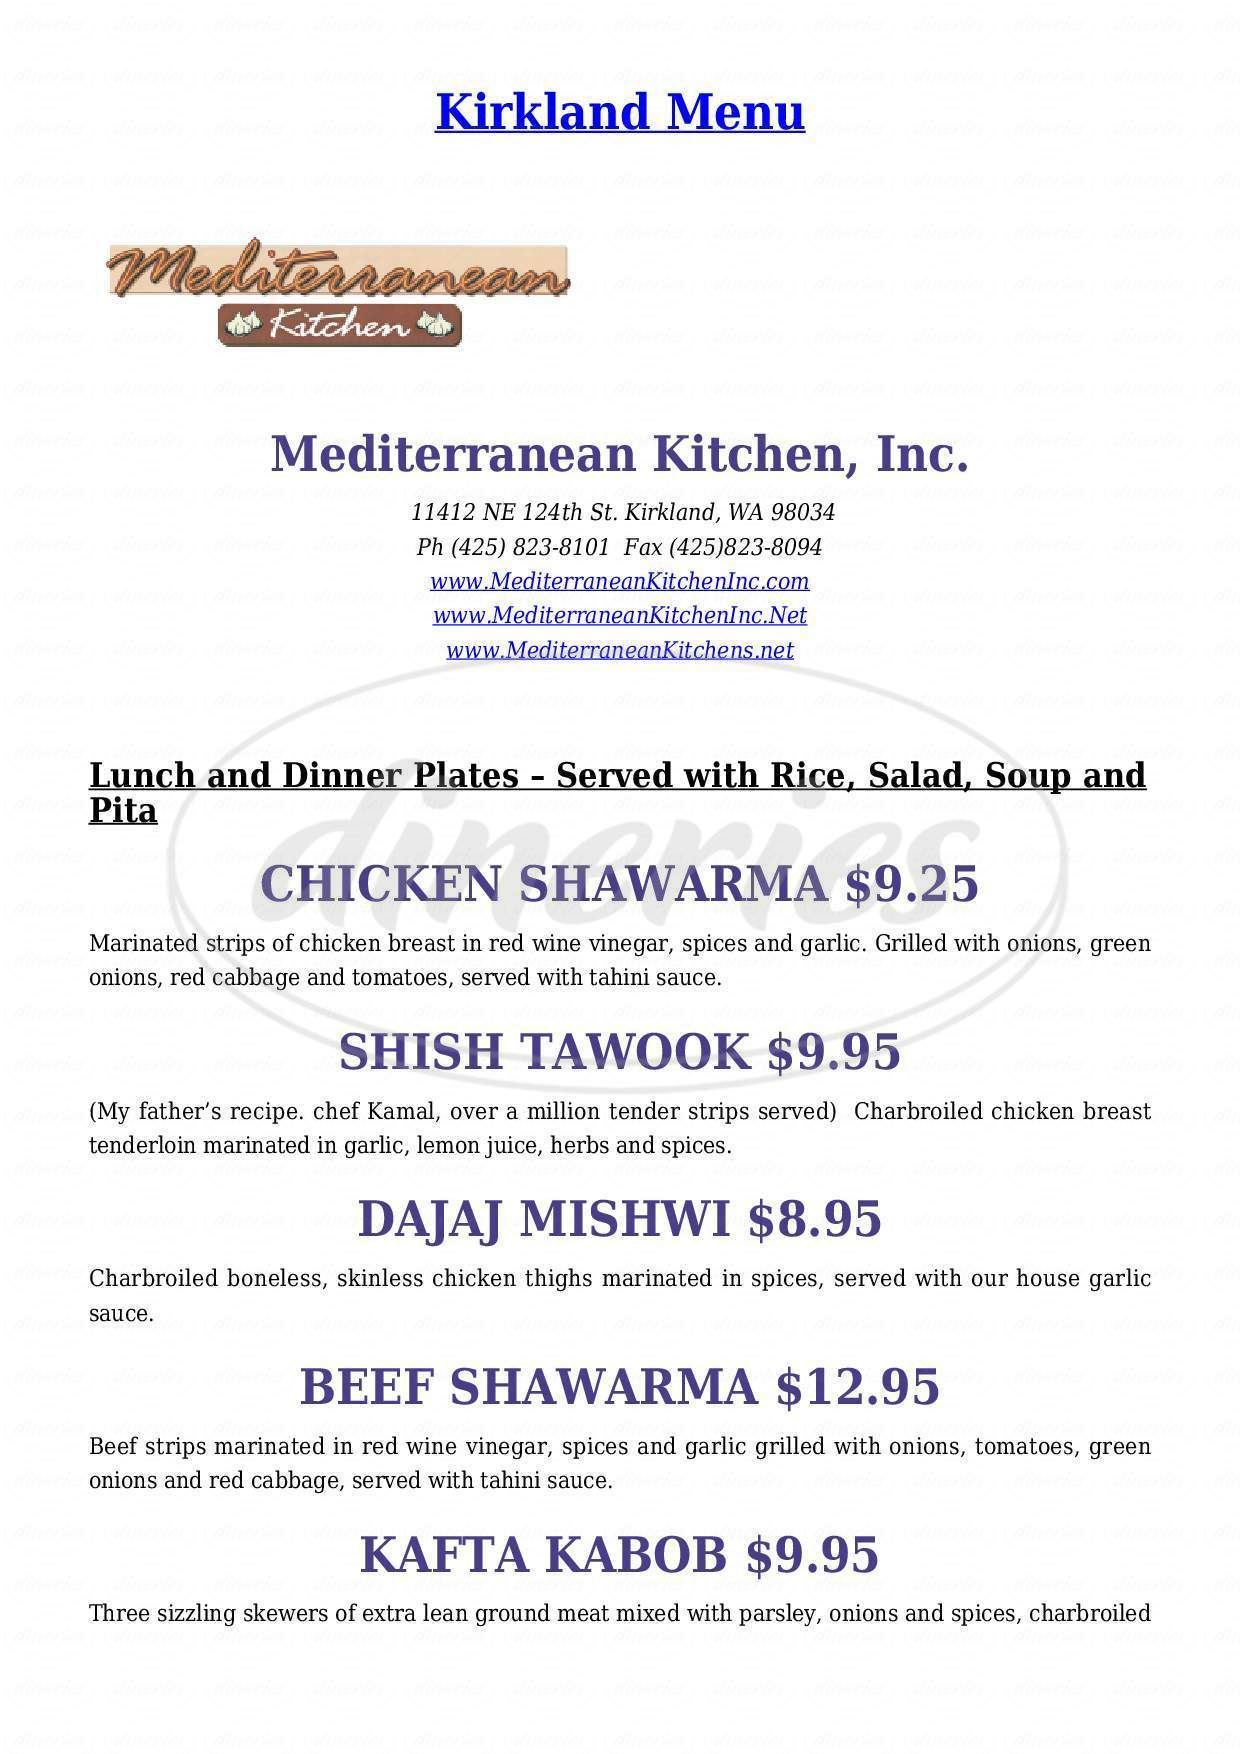 menu for Mediterranean Kitchen